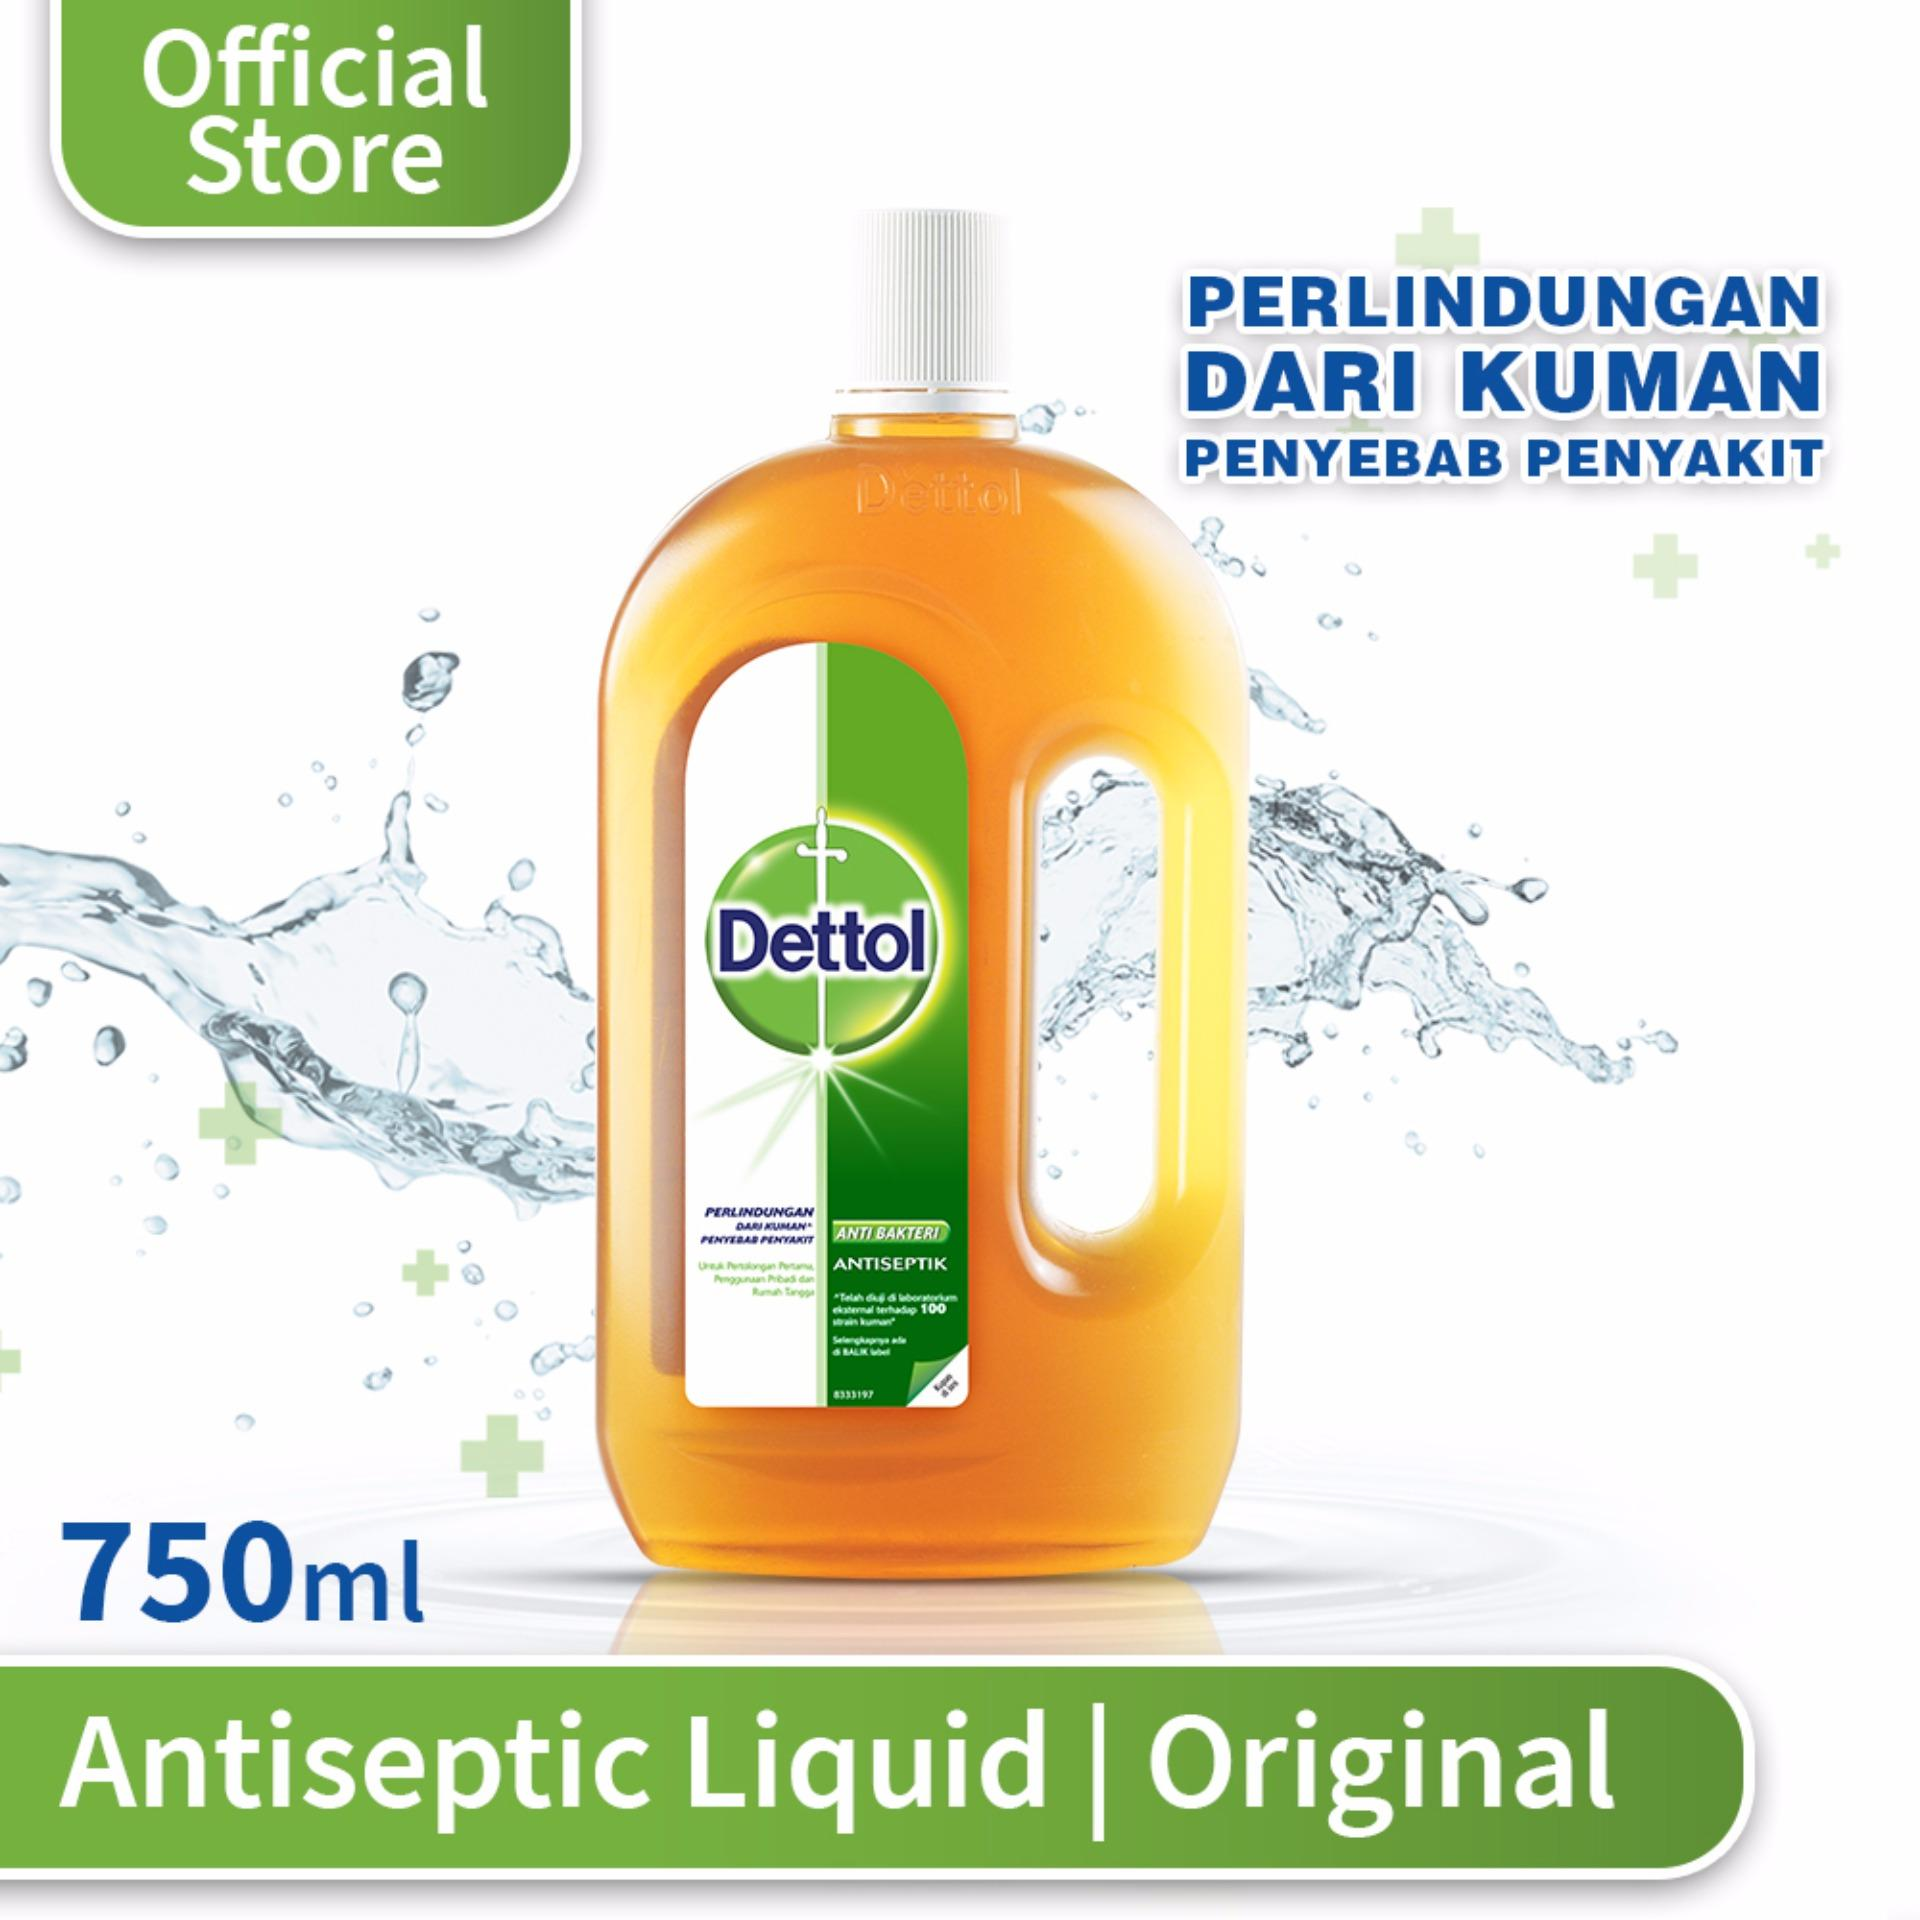 Dettol Antiseptic Liquid 750 Ml By Dettol Official Store.